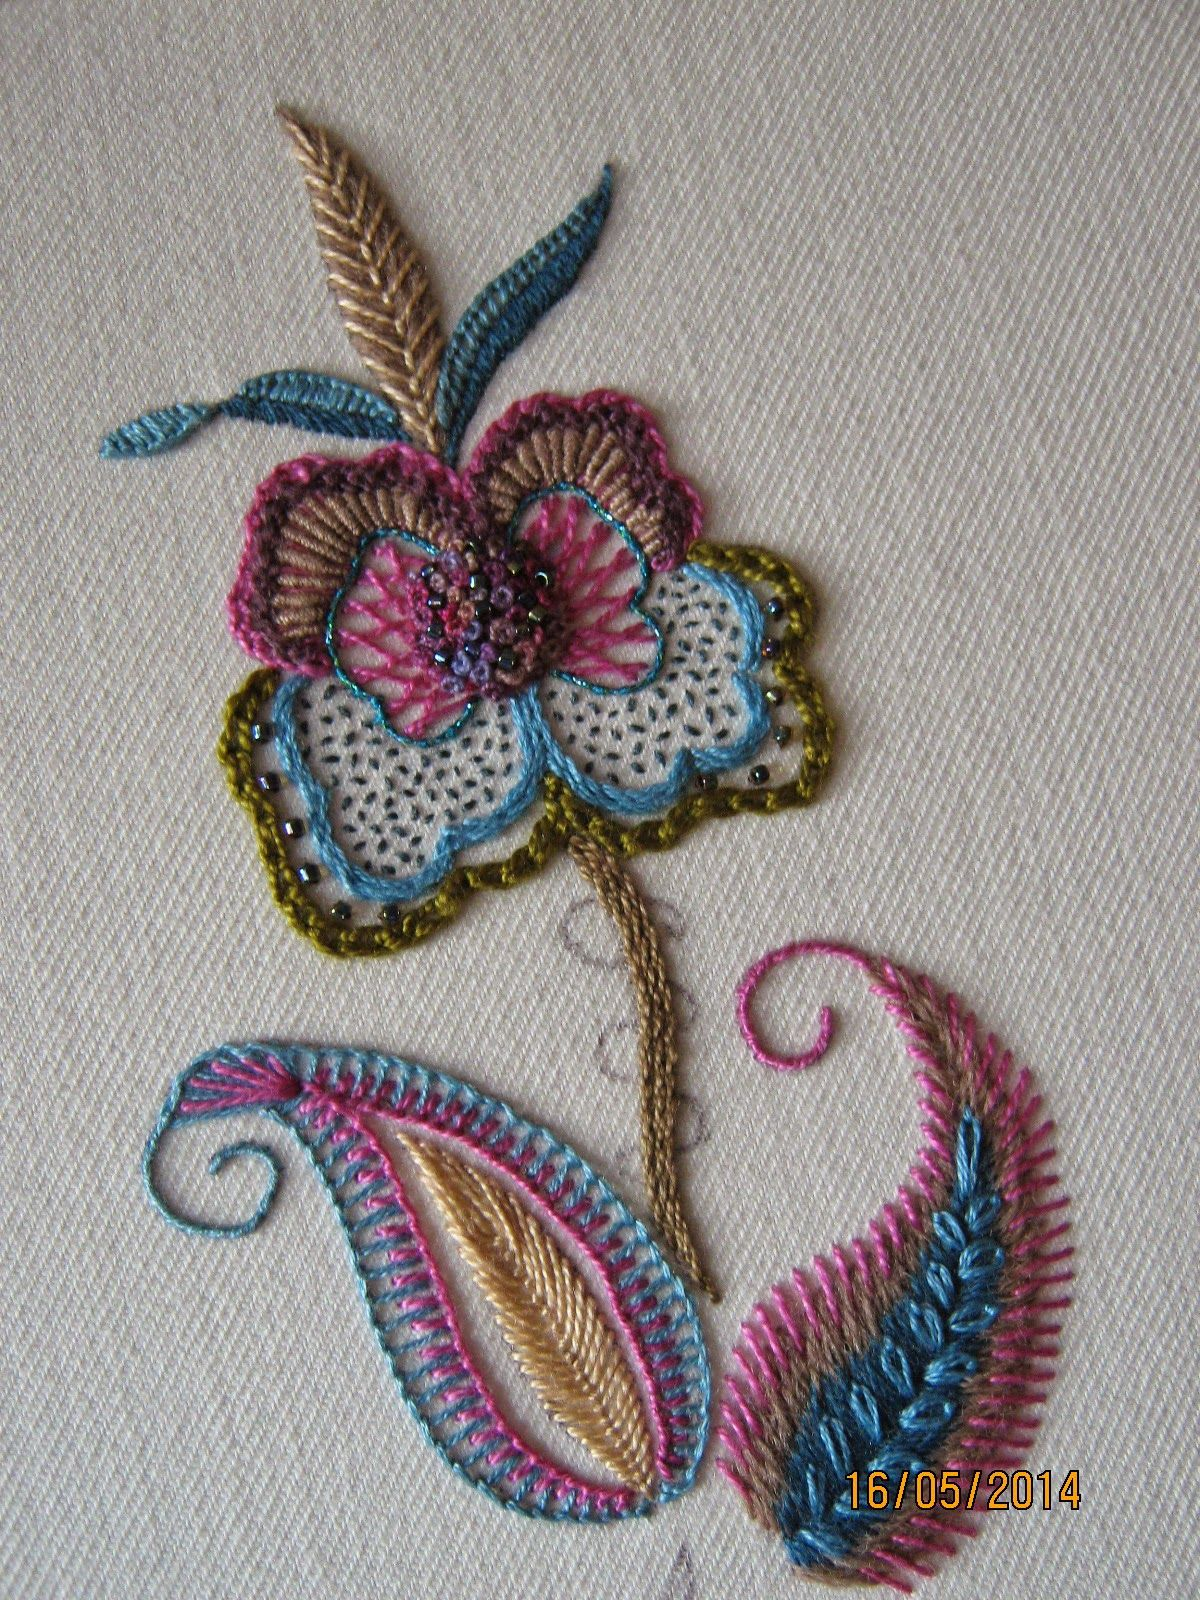 Ellas Craft Creations Embroidery Crewel Embroidery Embroidery